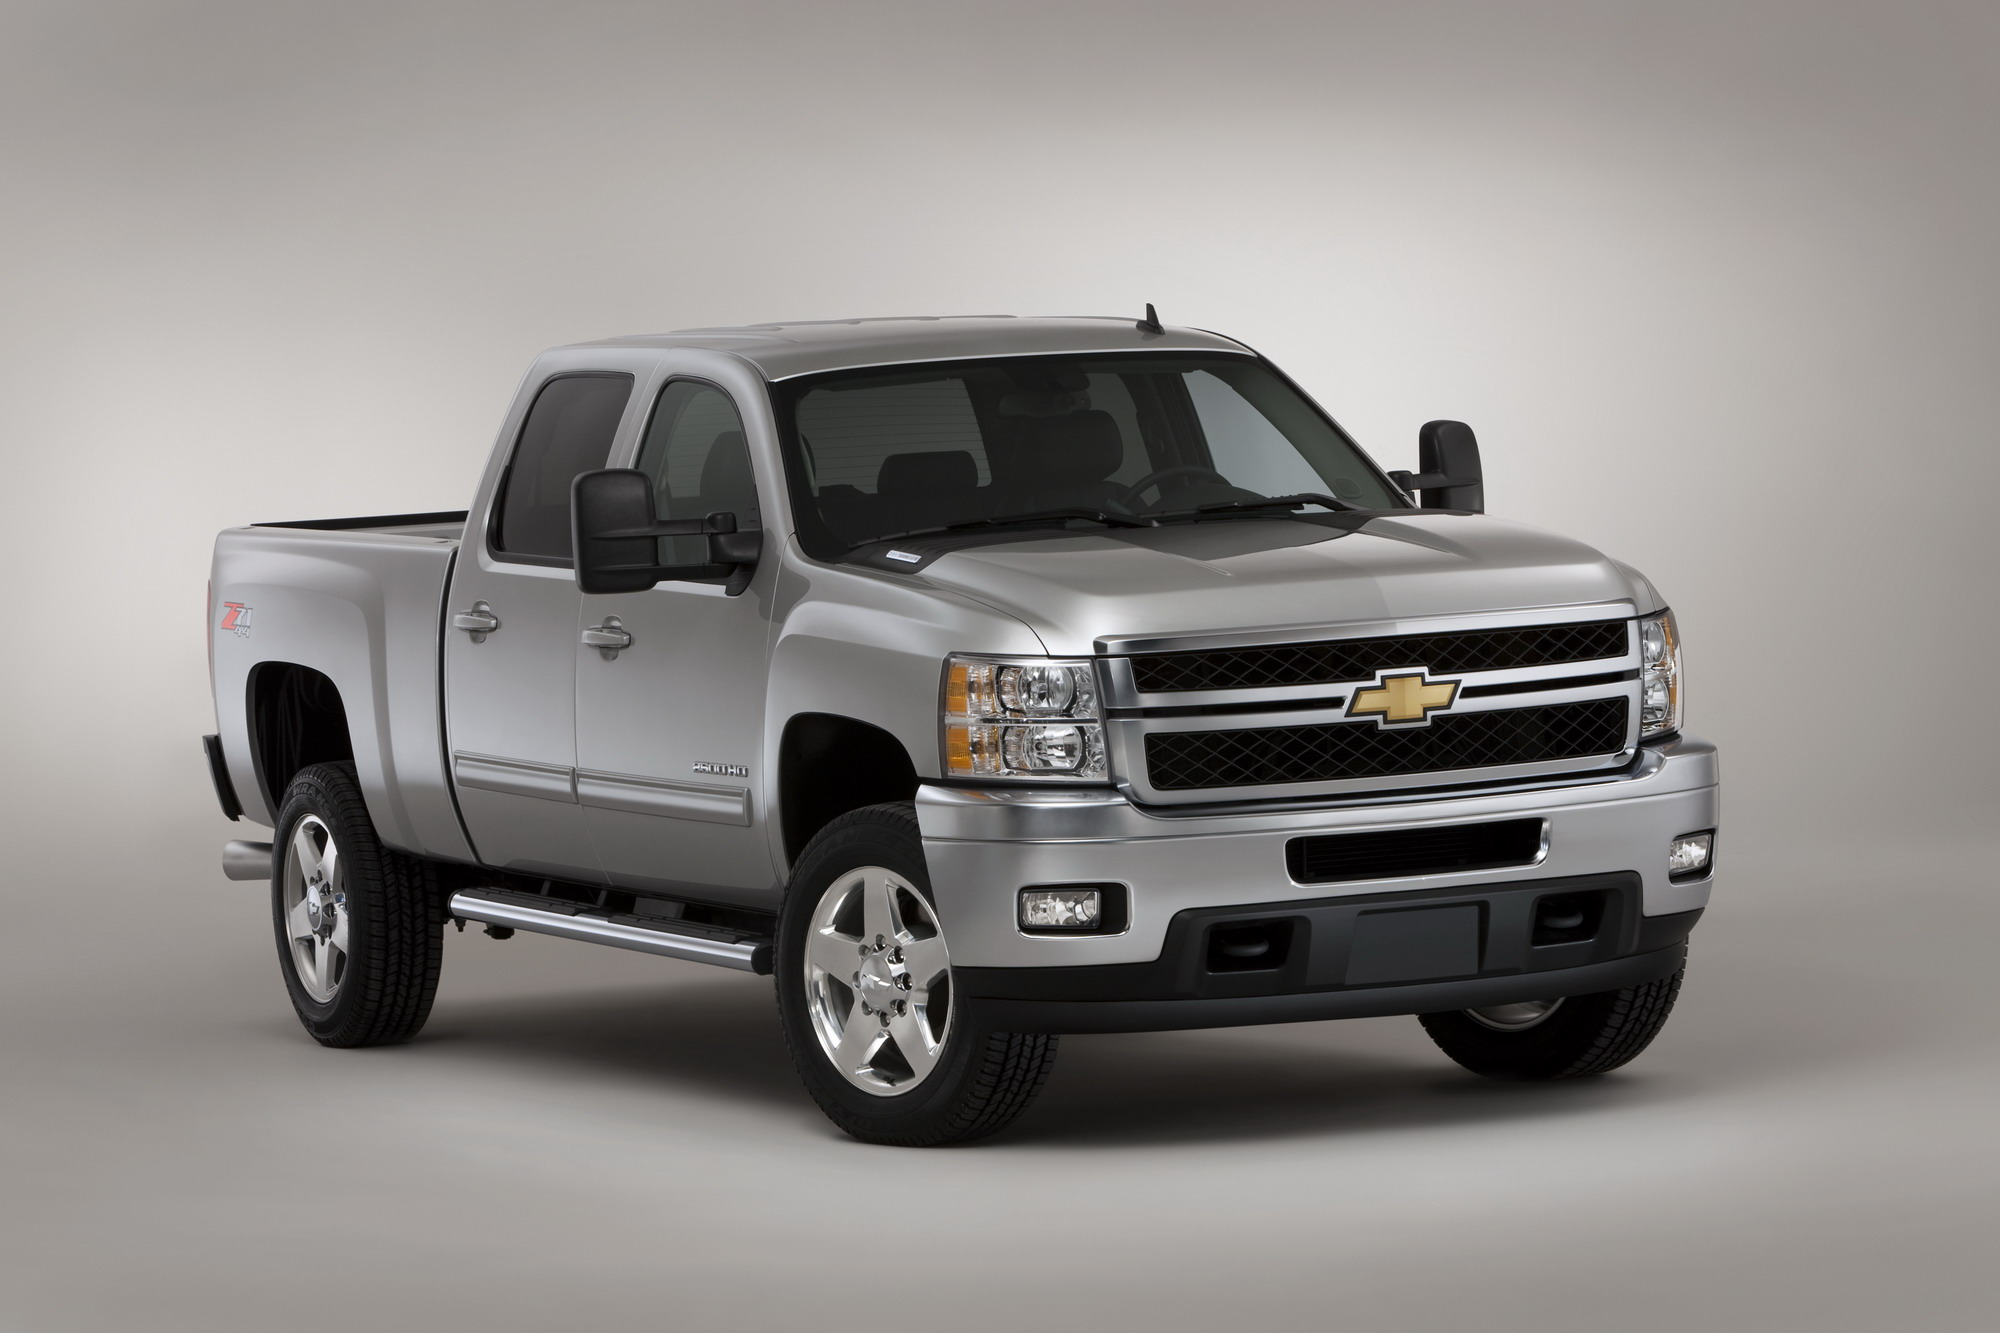 2011 Chevrolet Silverado | Top Speed